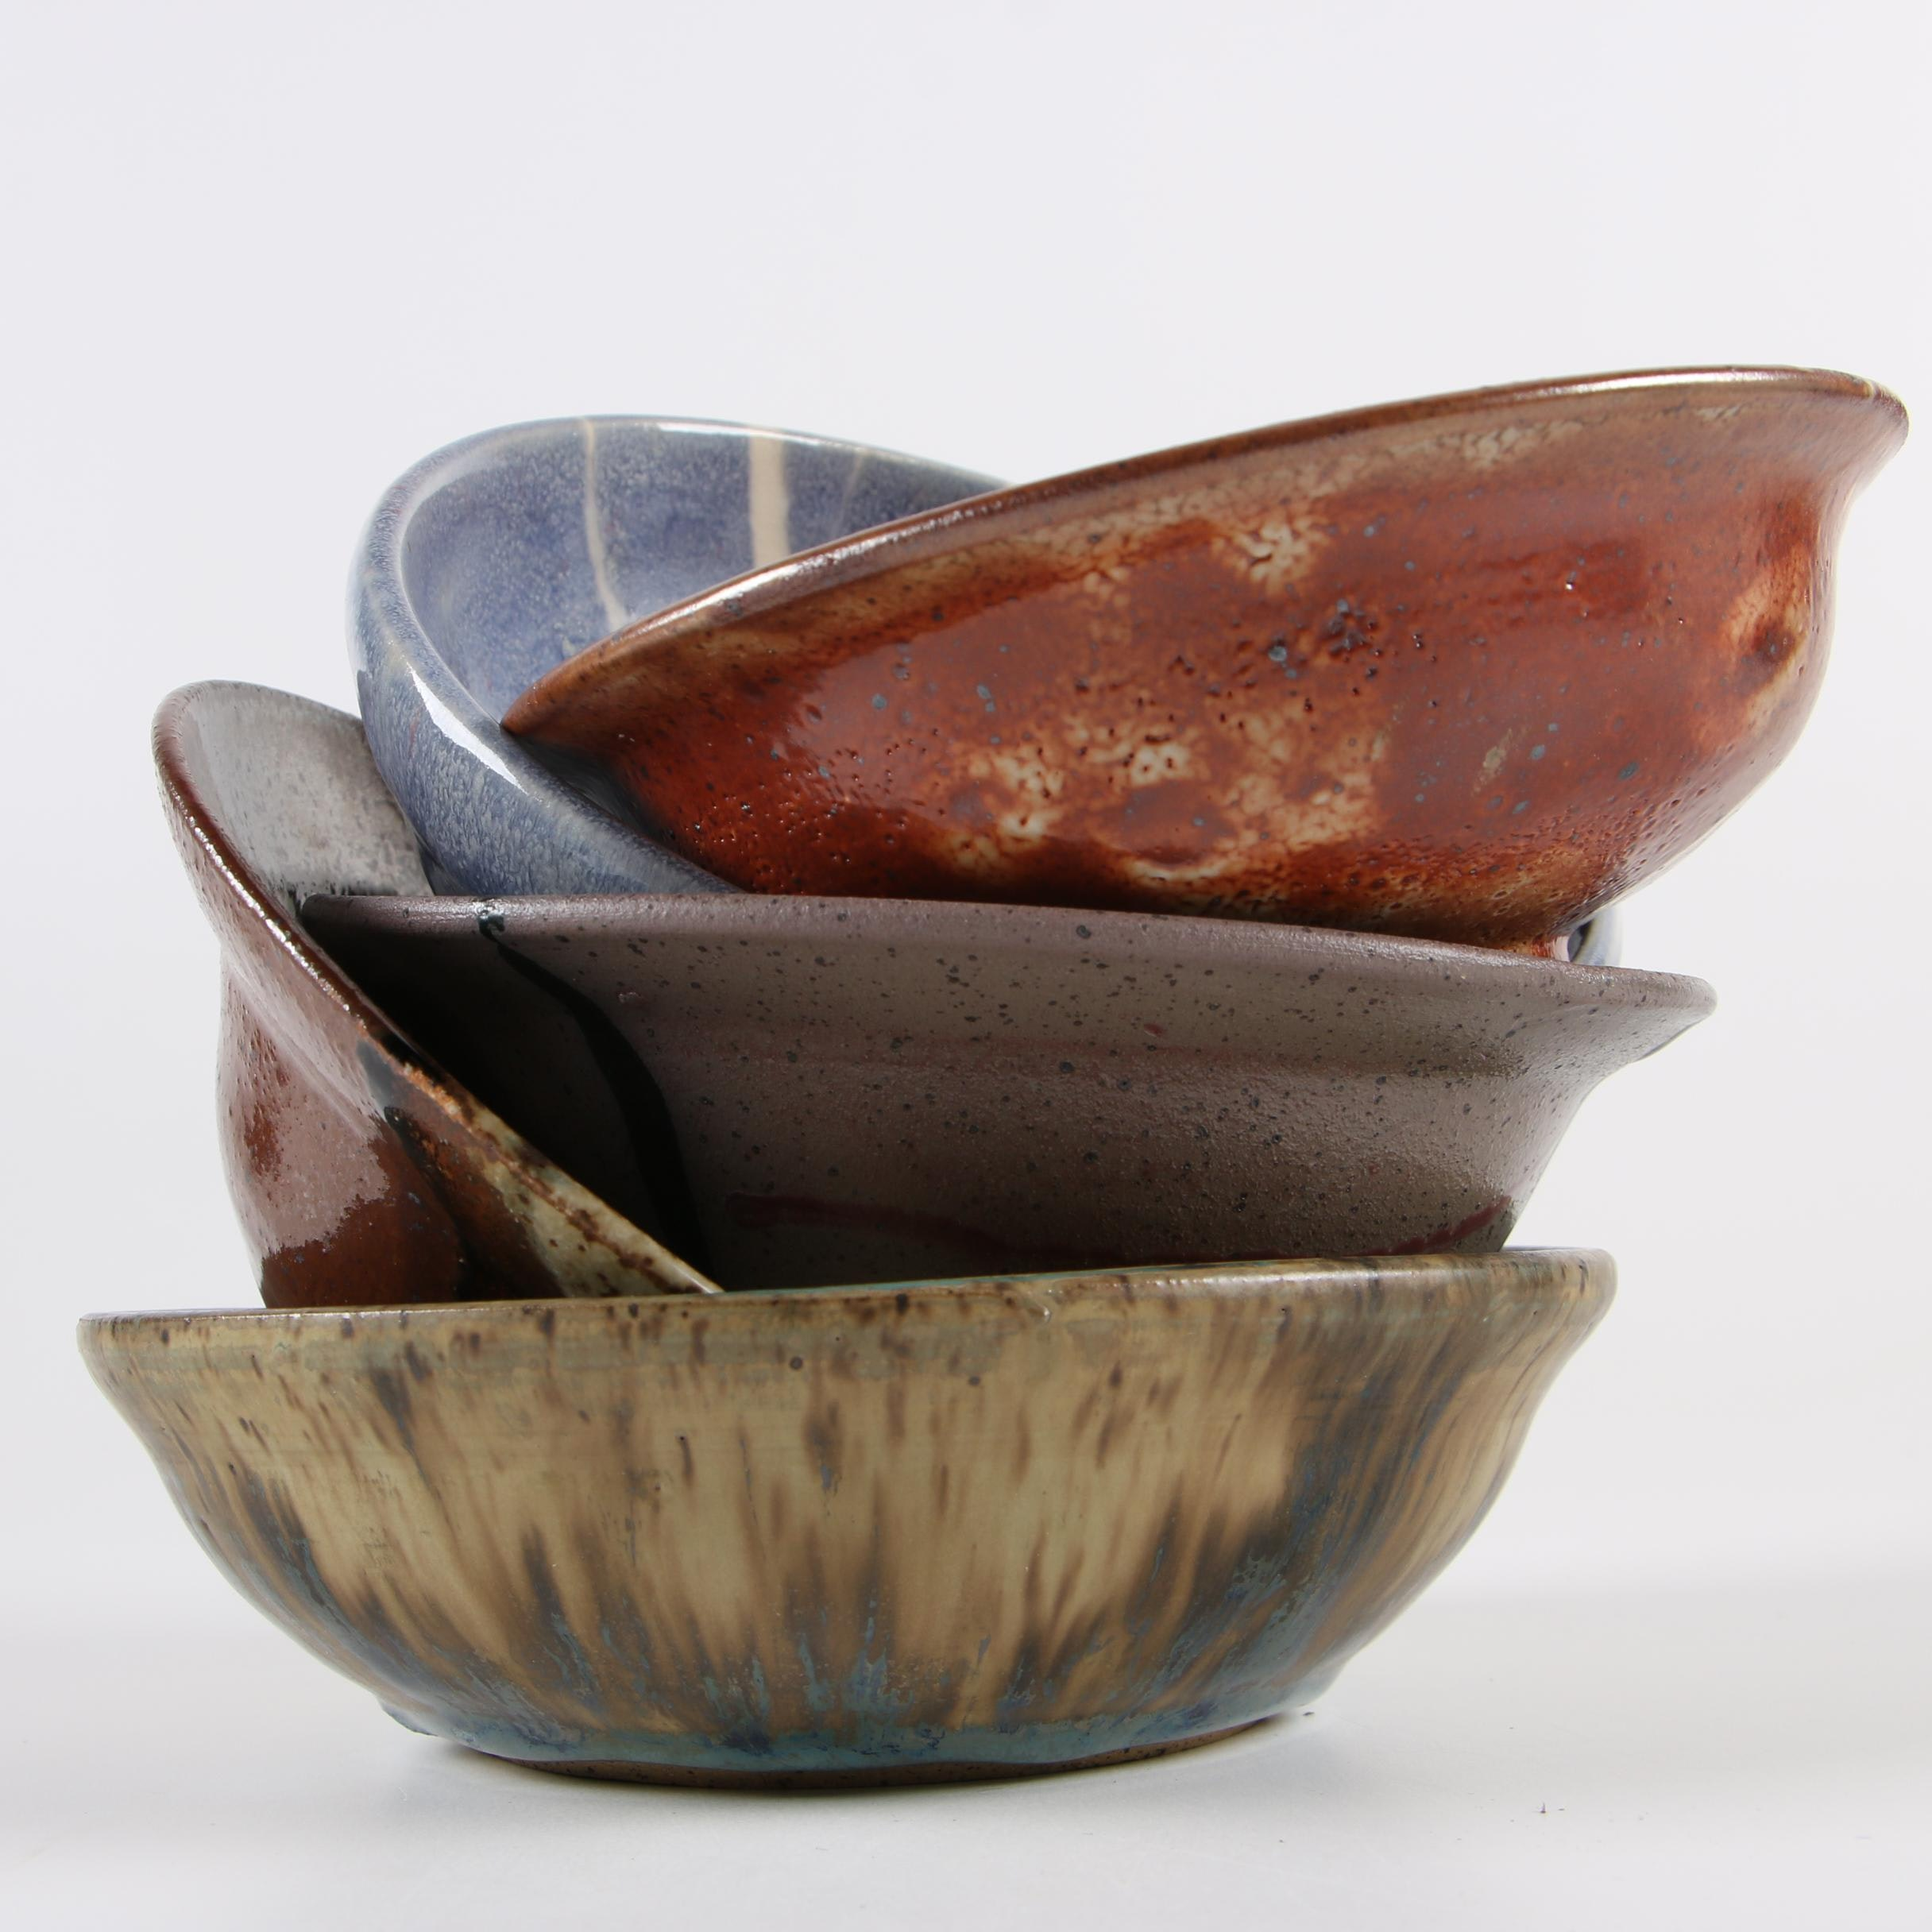 Frank Spink Wheel and Thrown Stoneware Bowls